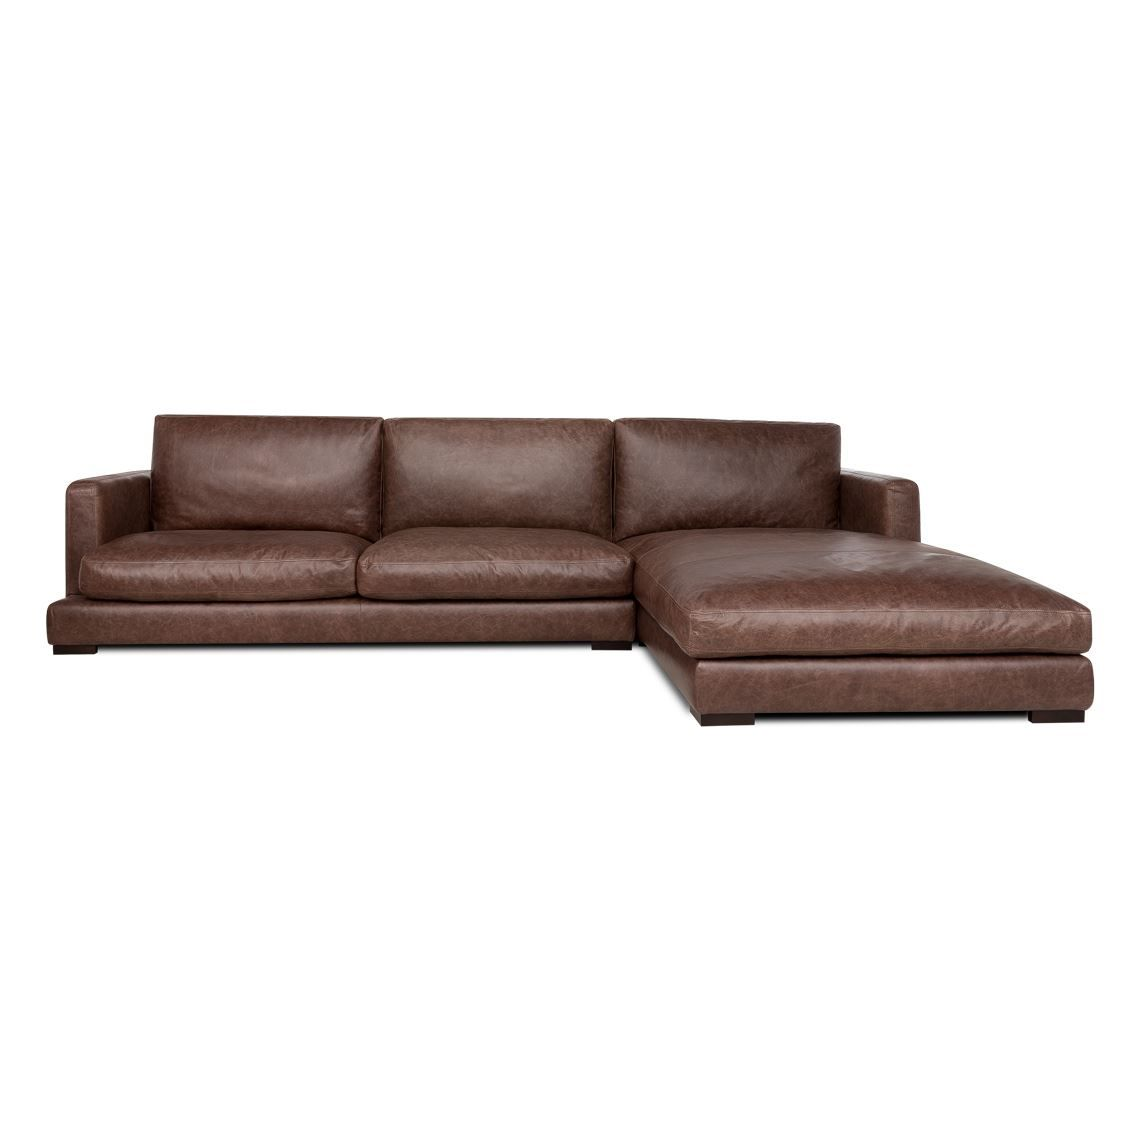 HAMILTON 3 Seat Leather Modular Sofa With Right Chaise in 2019 ...